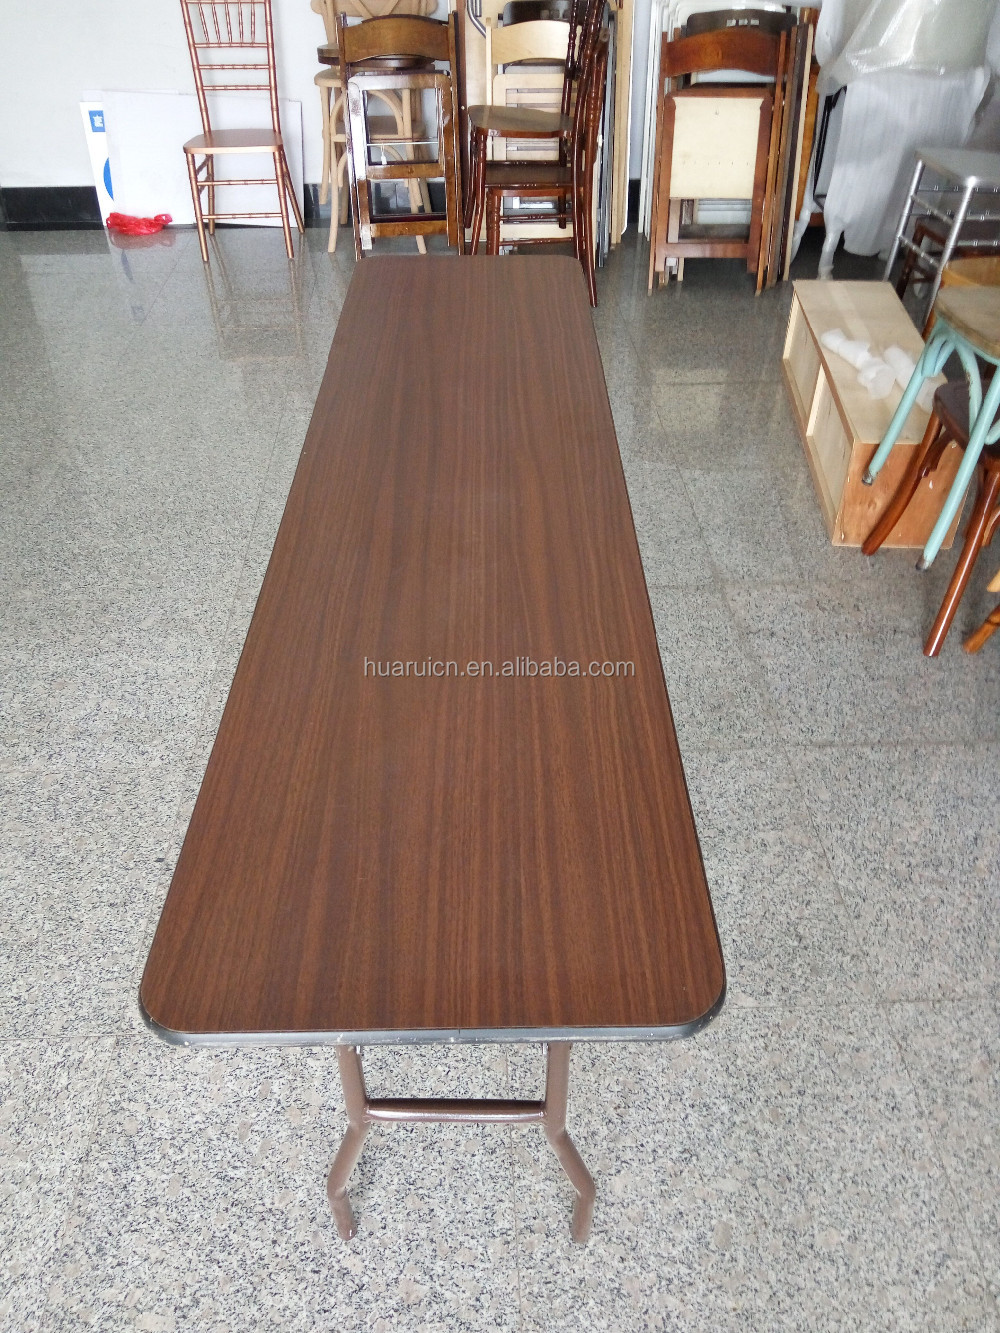 High quality folding dining wood banquet <strong>table</strong>